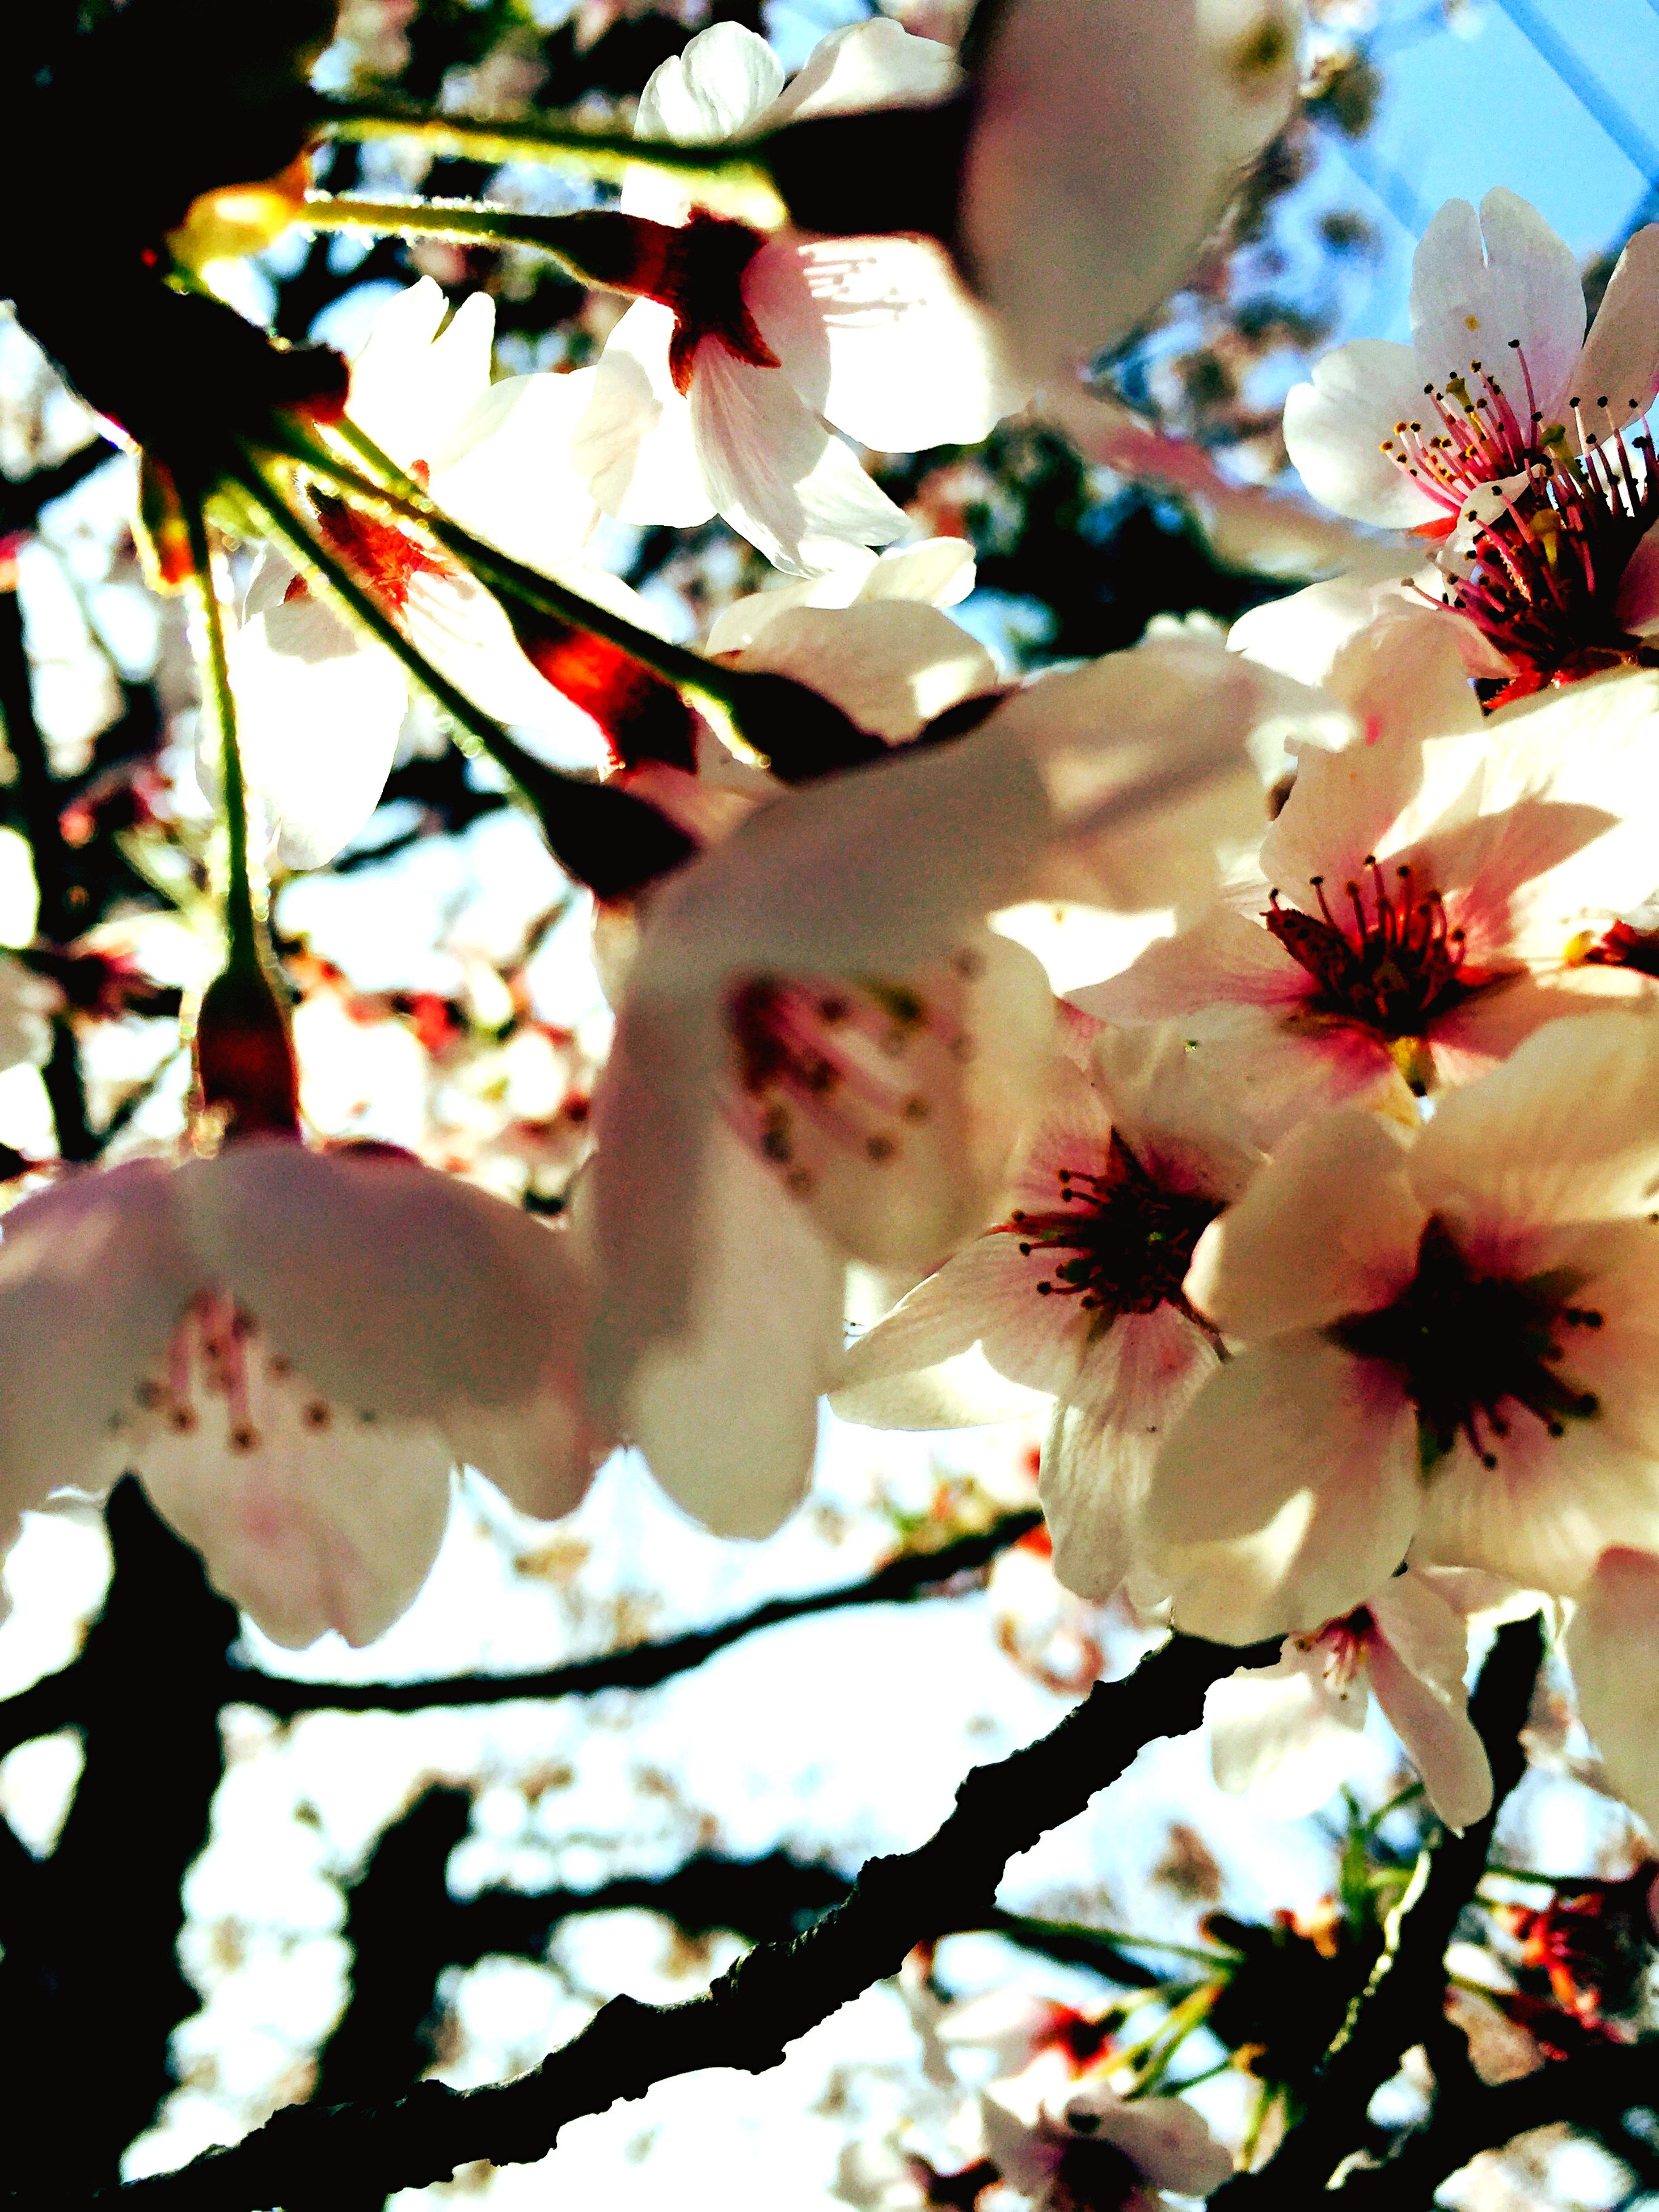 flower, branch, freshness, low angle view, tree, growth, cherry blossom, beauty in nature, fragility, petal, nature, blossom, pink color, cherry tree, close-up, focus on foreground, blooming, day, in bloom, outdoors